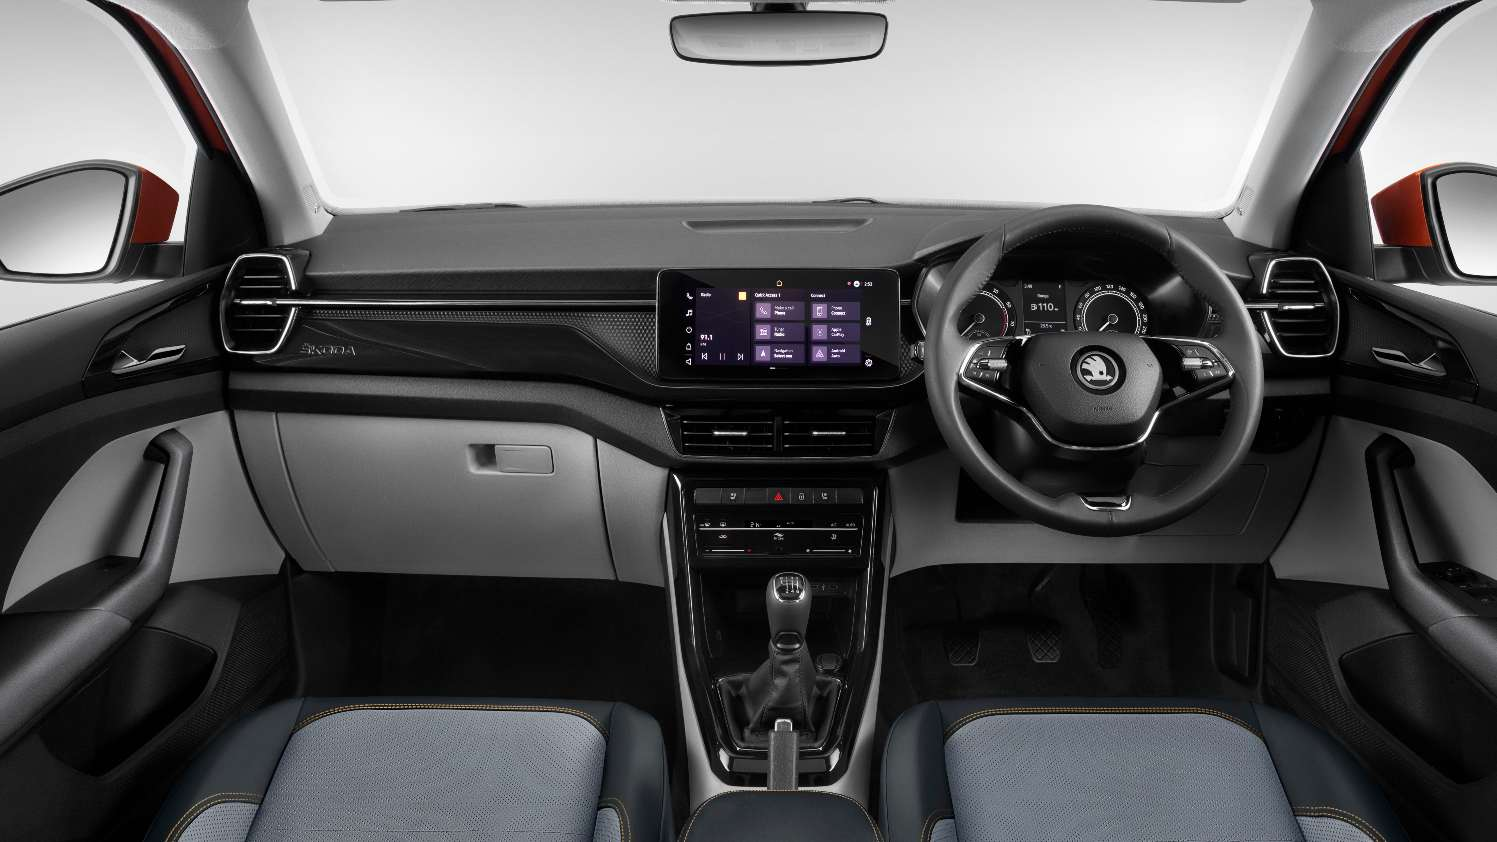 Skoda has smartly used different textures for the multi-layer dashboard of the Kushaq. Image: Skoda